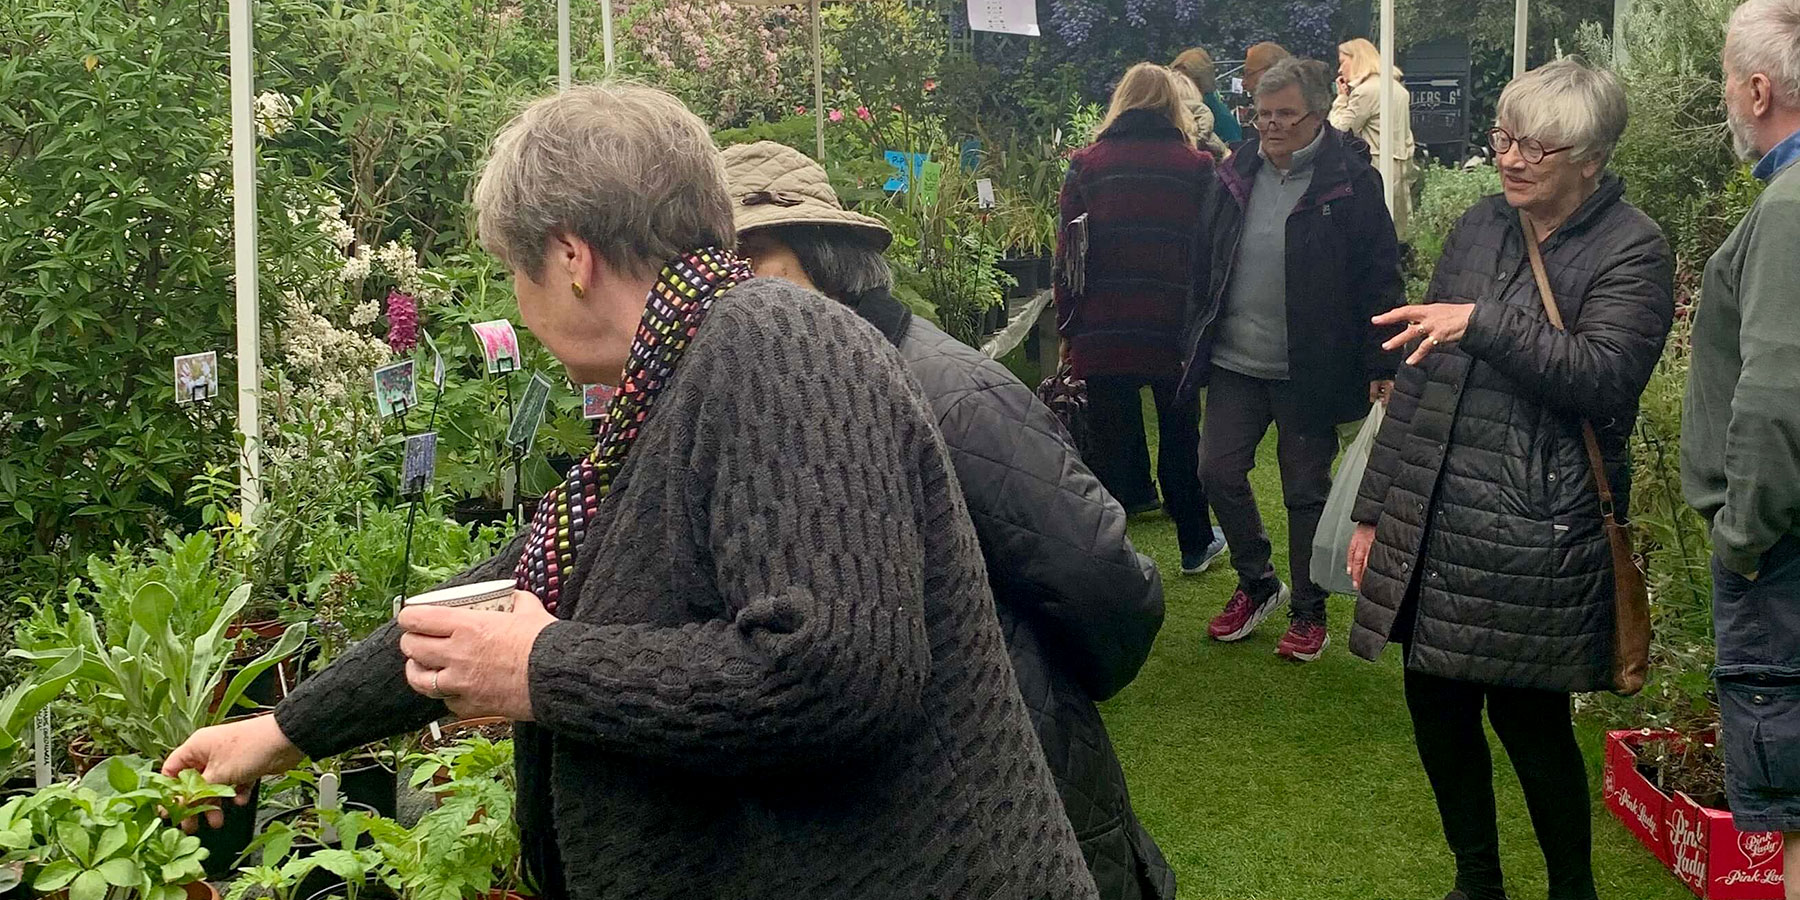 Charity plant sale garden stalls, in aid of brain research